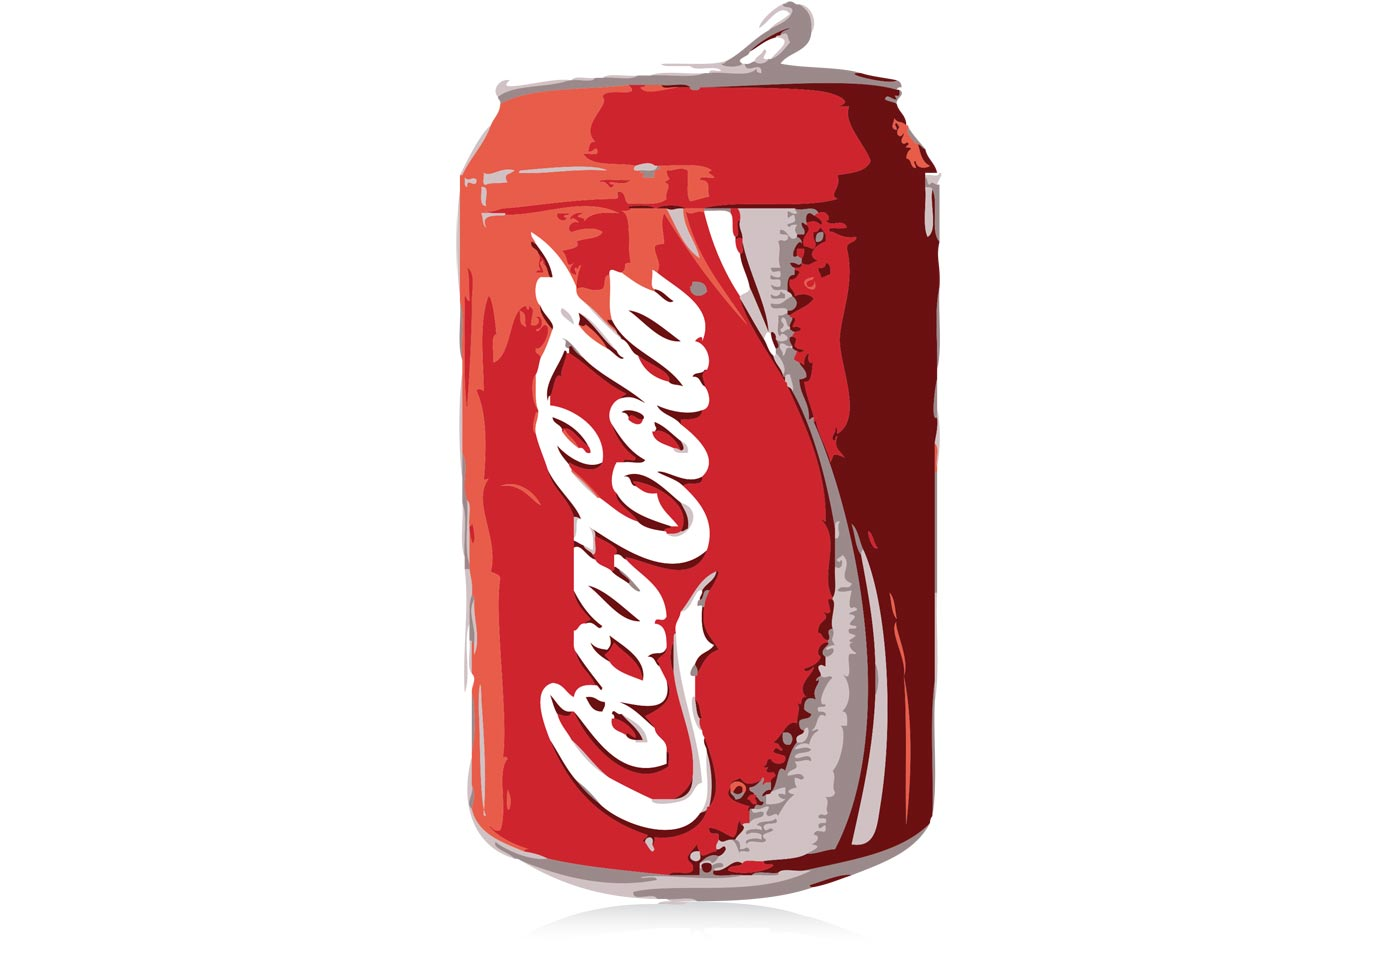 How To Paint A Coke Can